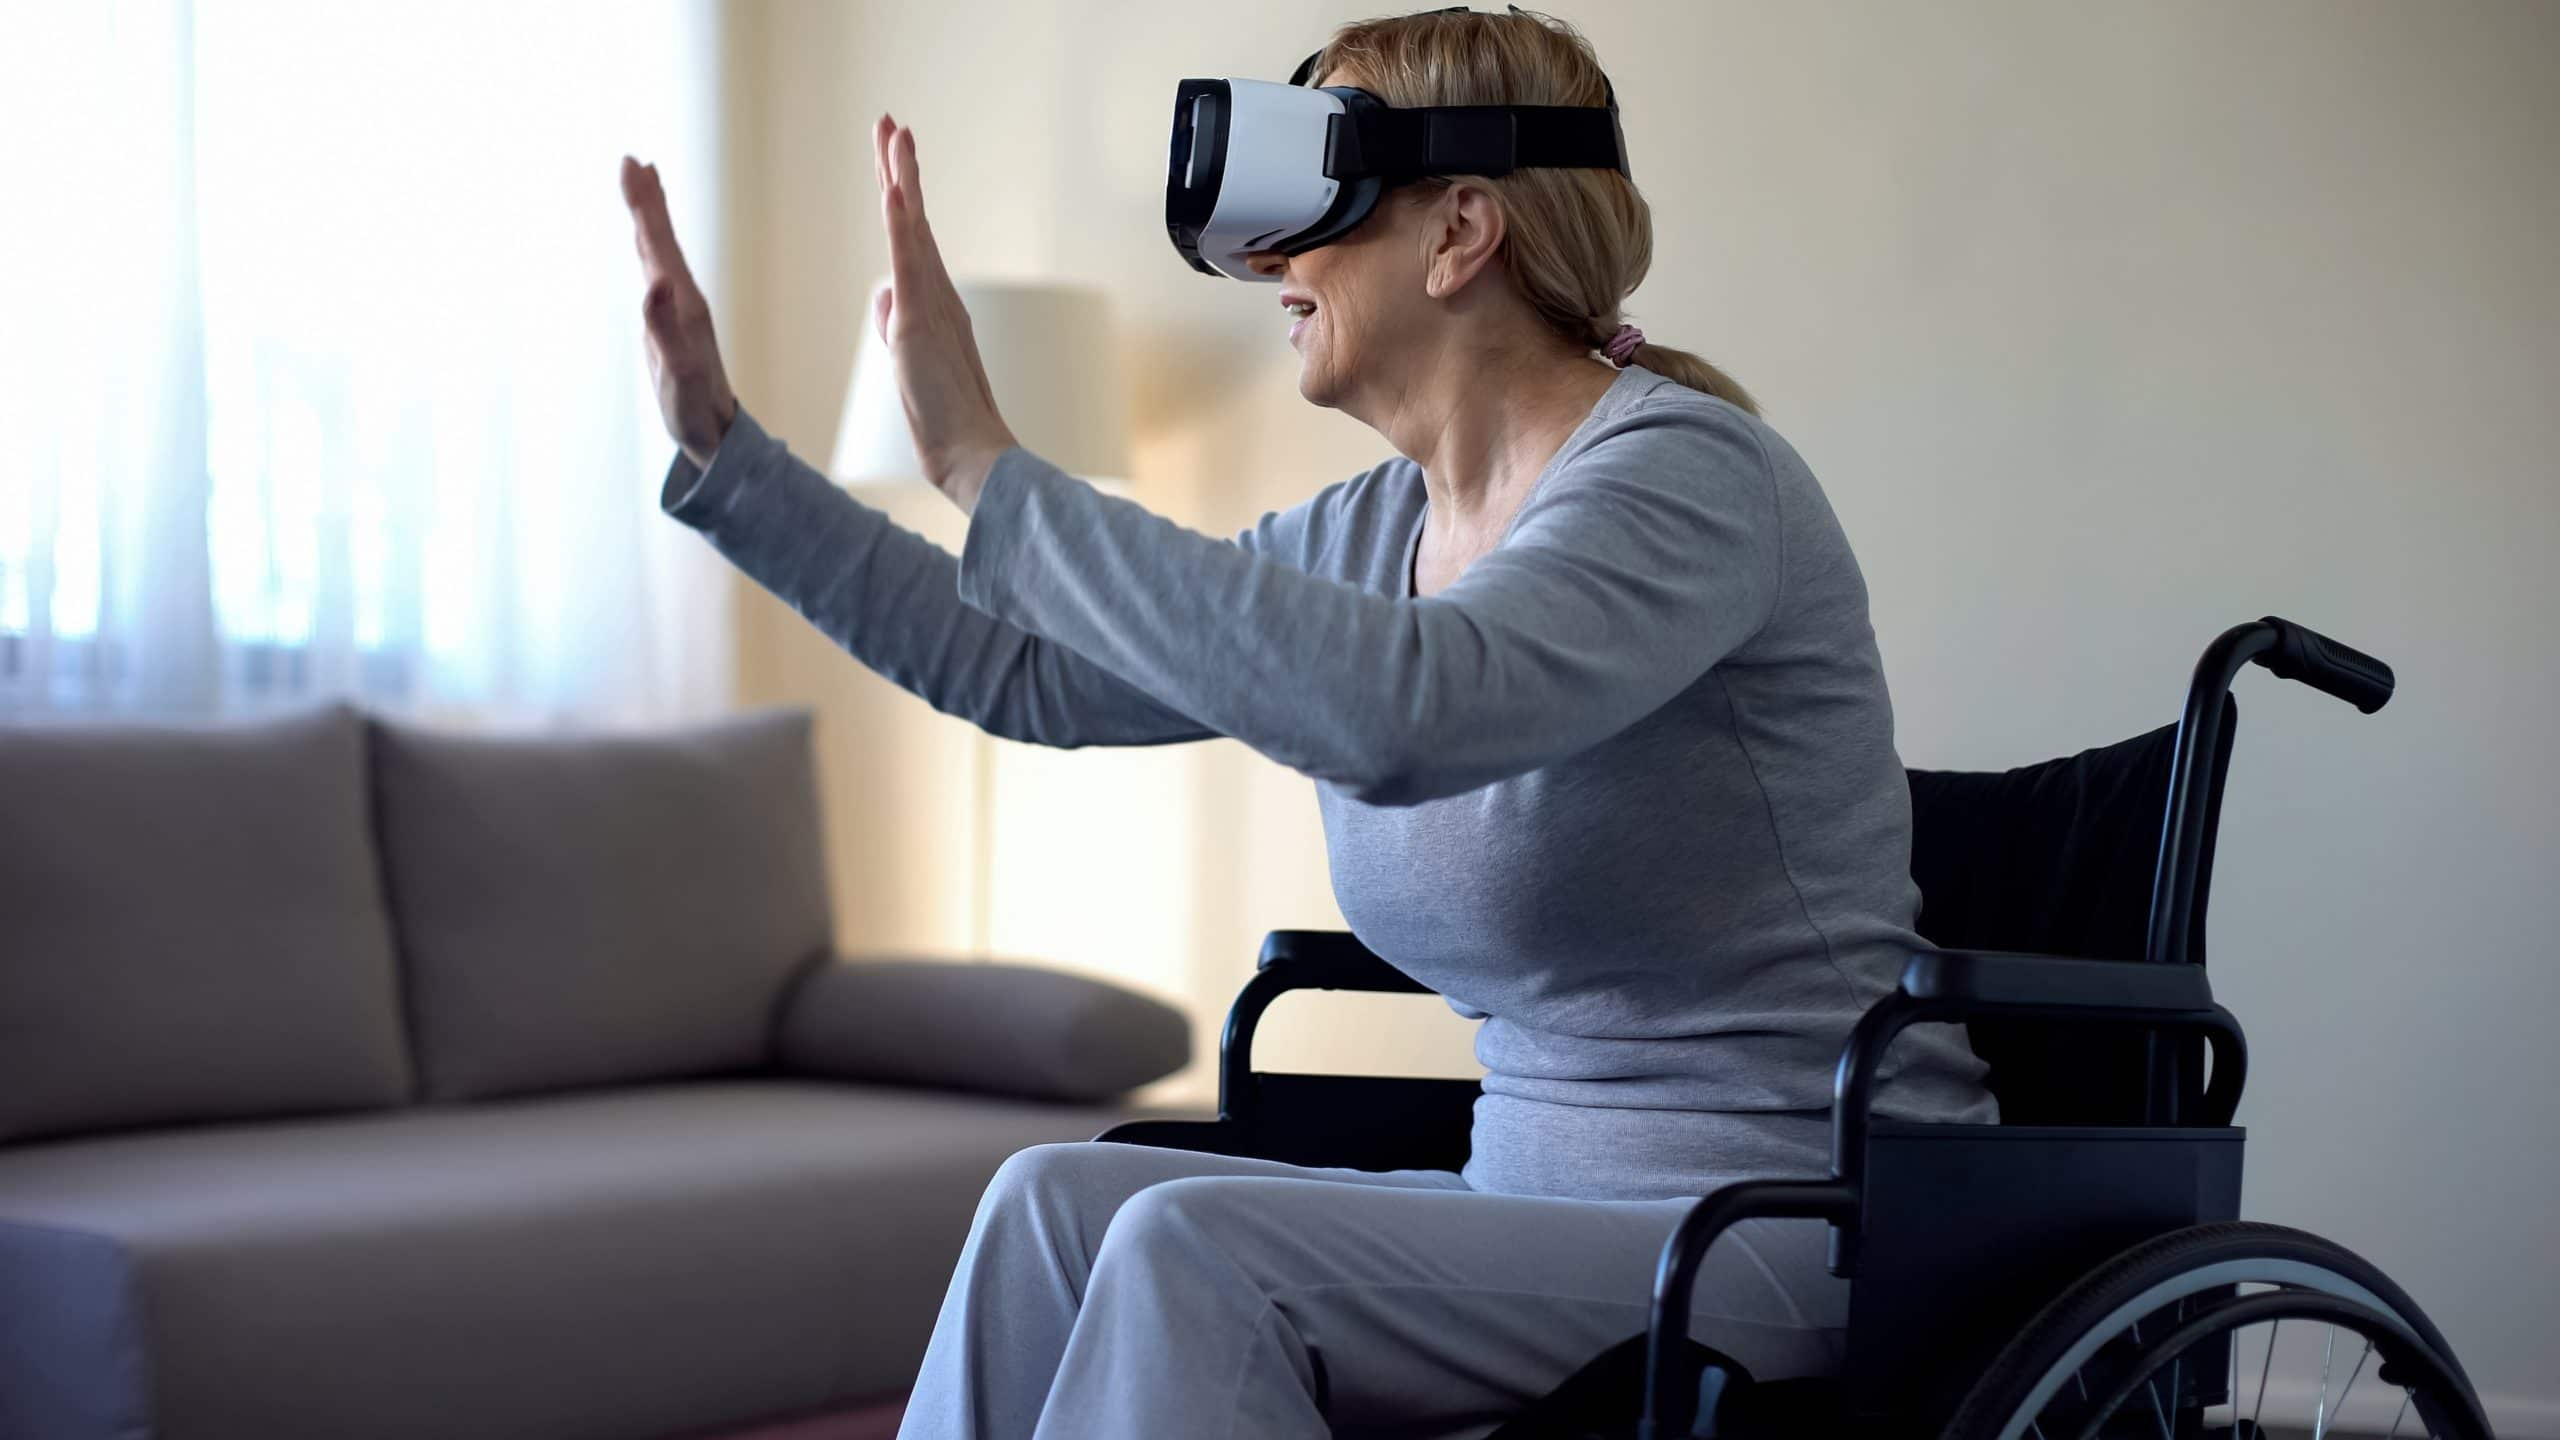 Woman in Wheelchair using a Virtual Reality Headset